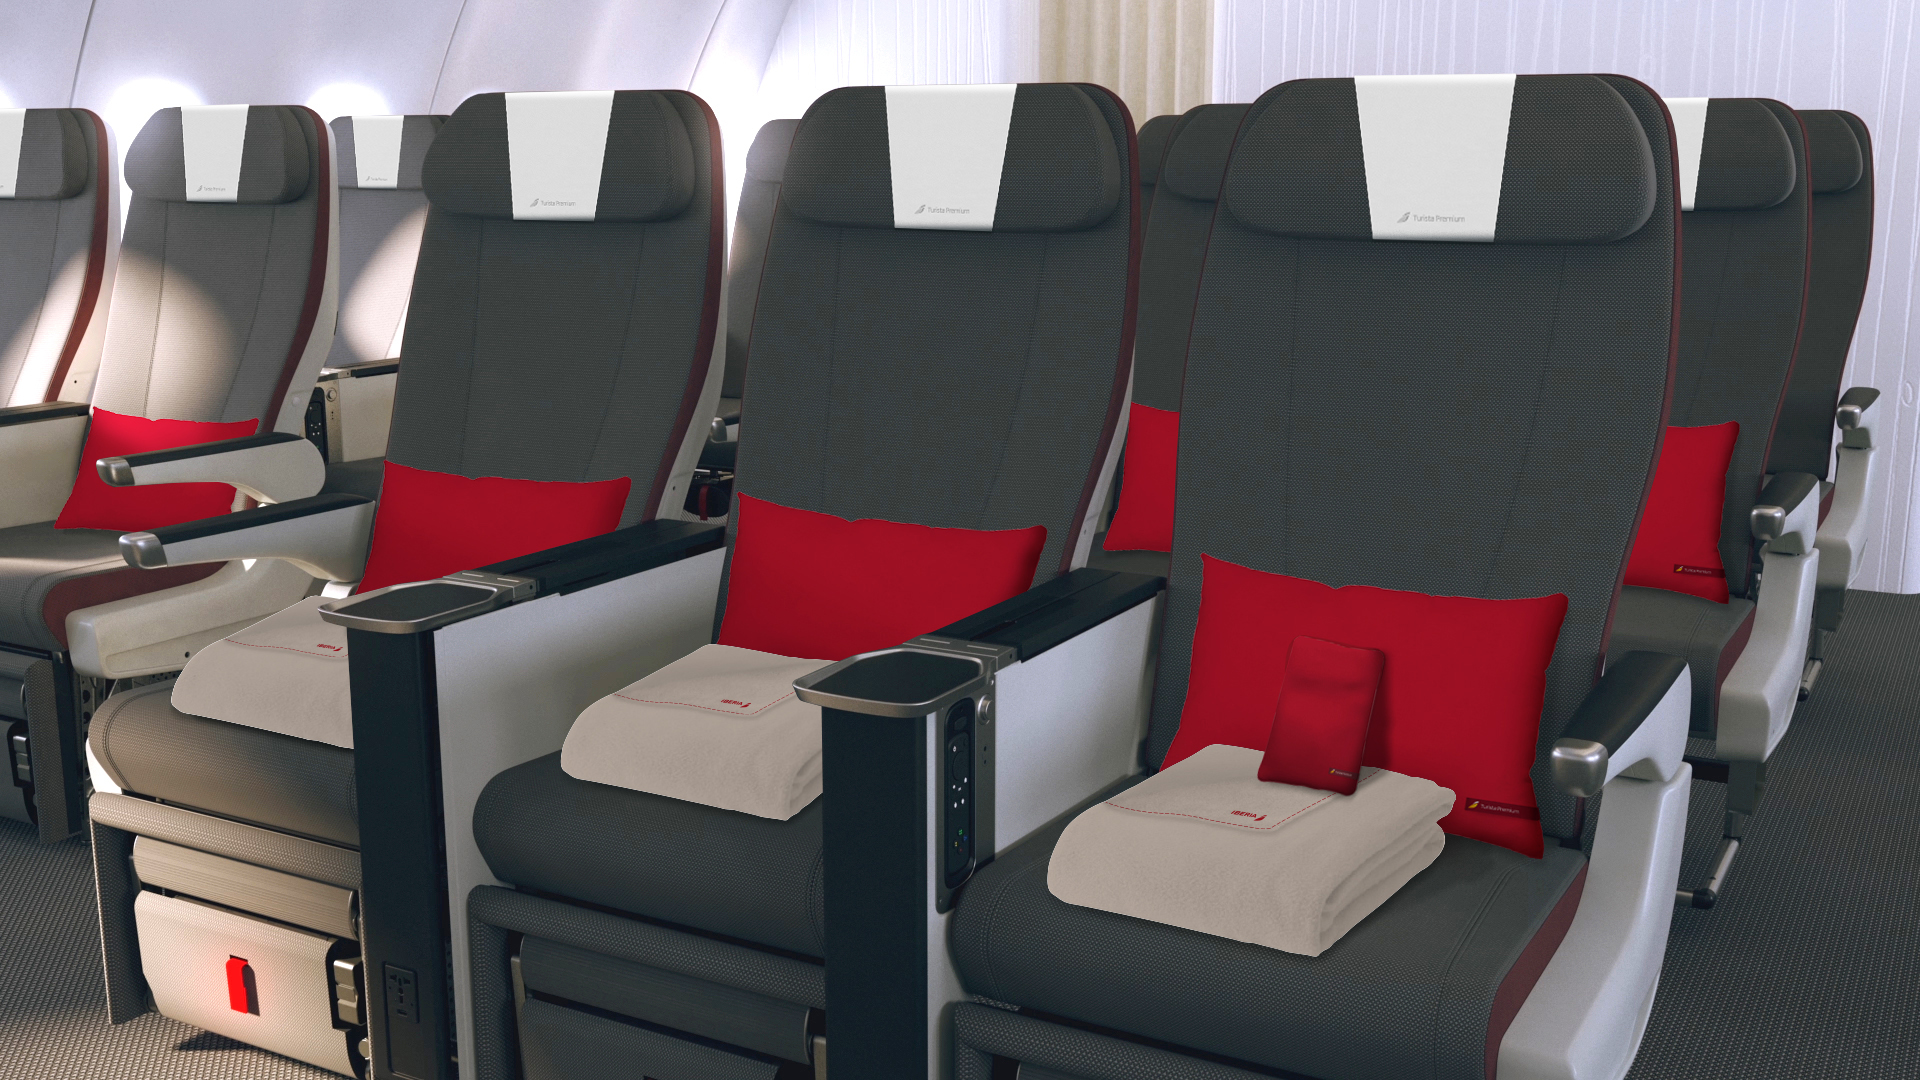 iberia cco details first routes to see new premium economy cabins runway girlrunway girl premium economy cabins